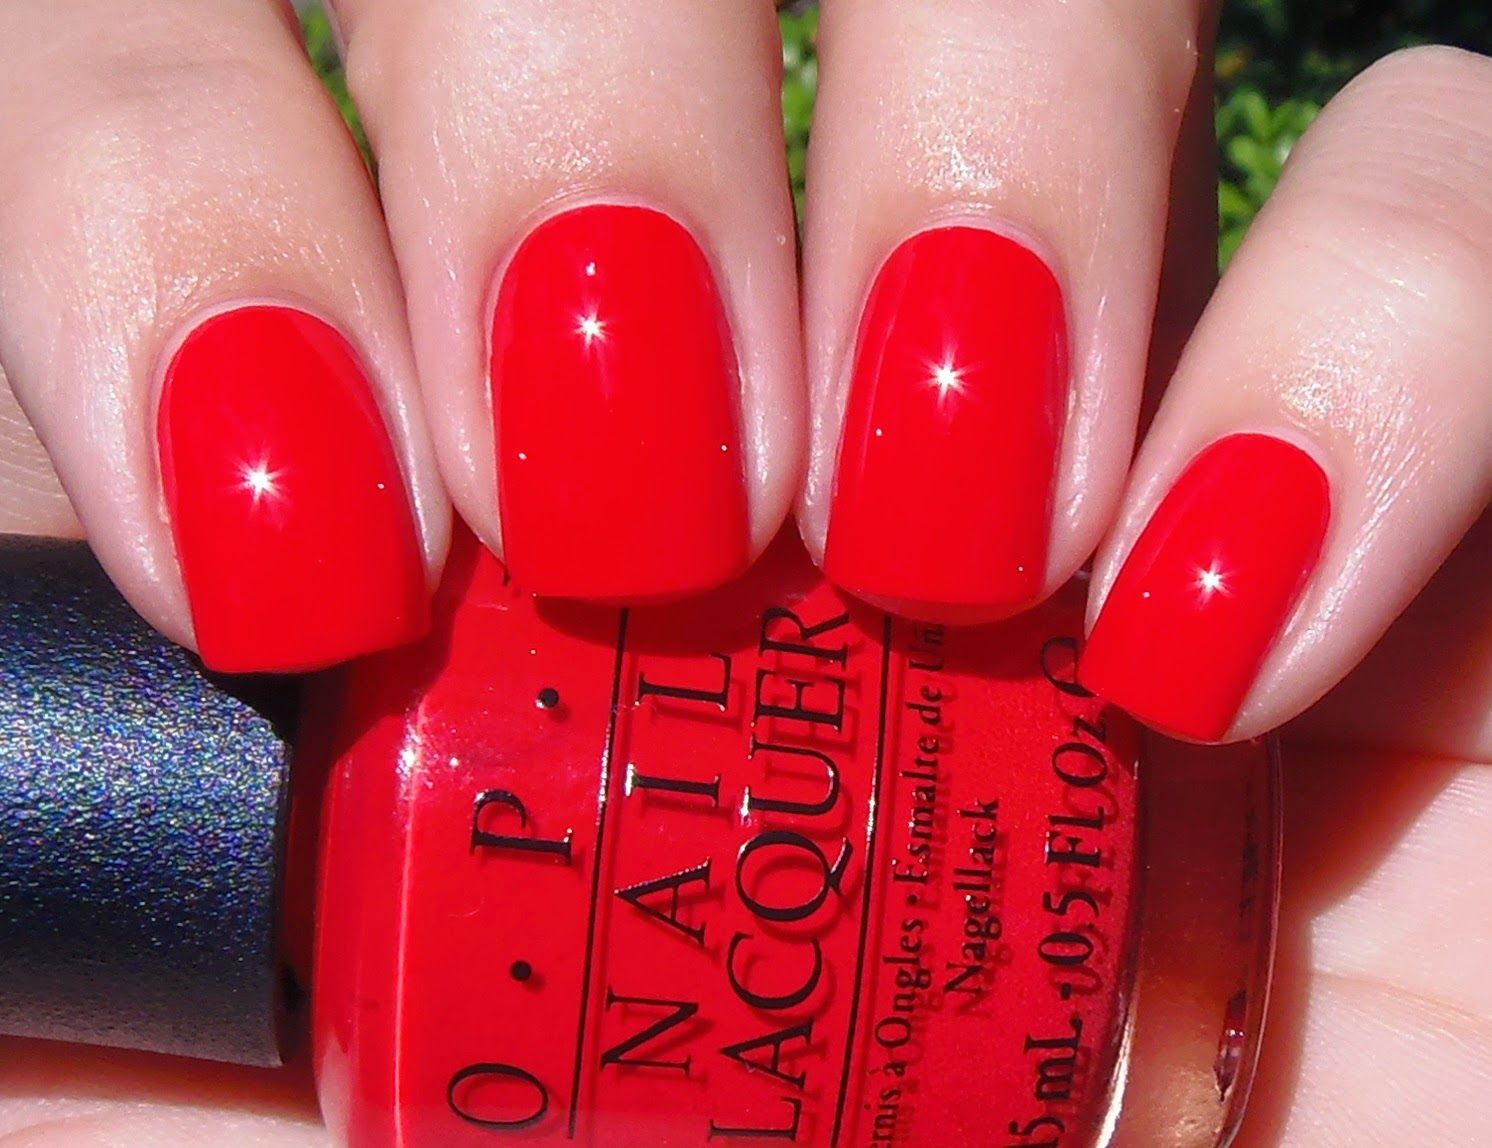 Sparkly Vernis Opi Coca Cola Red Is A Bright Creme